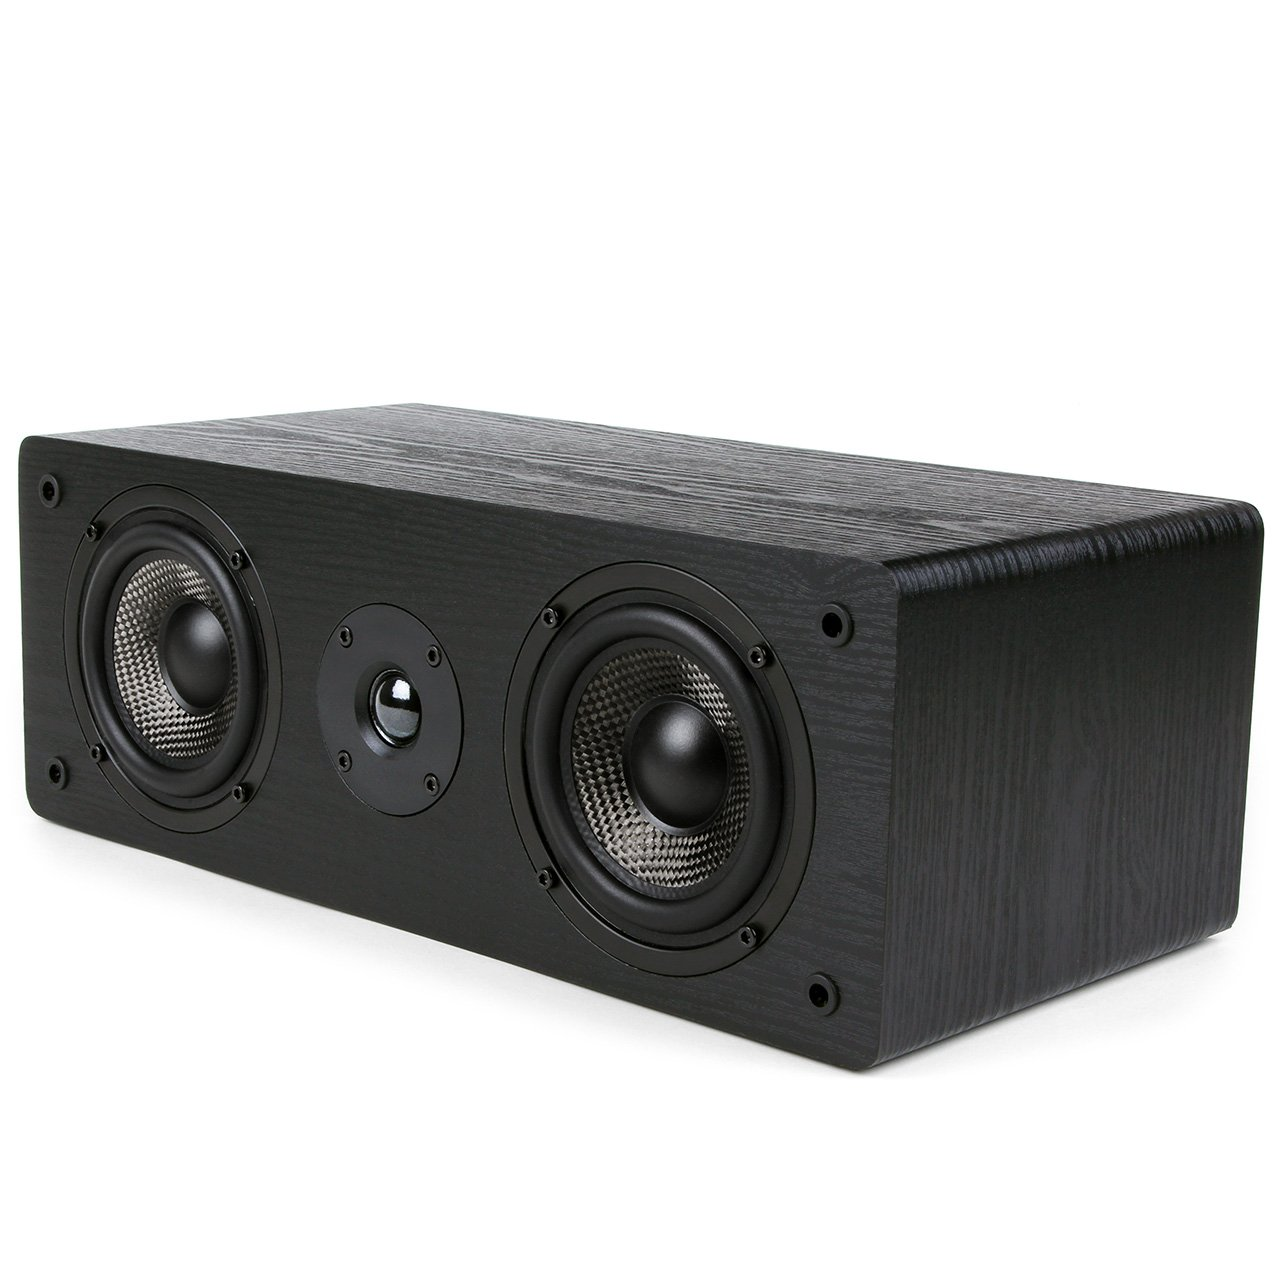 Micca MB42-C Center Channel Speaker with Dual 4-Inch Carbon Fiber Woofer and Silk Dome Tweeter, Black